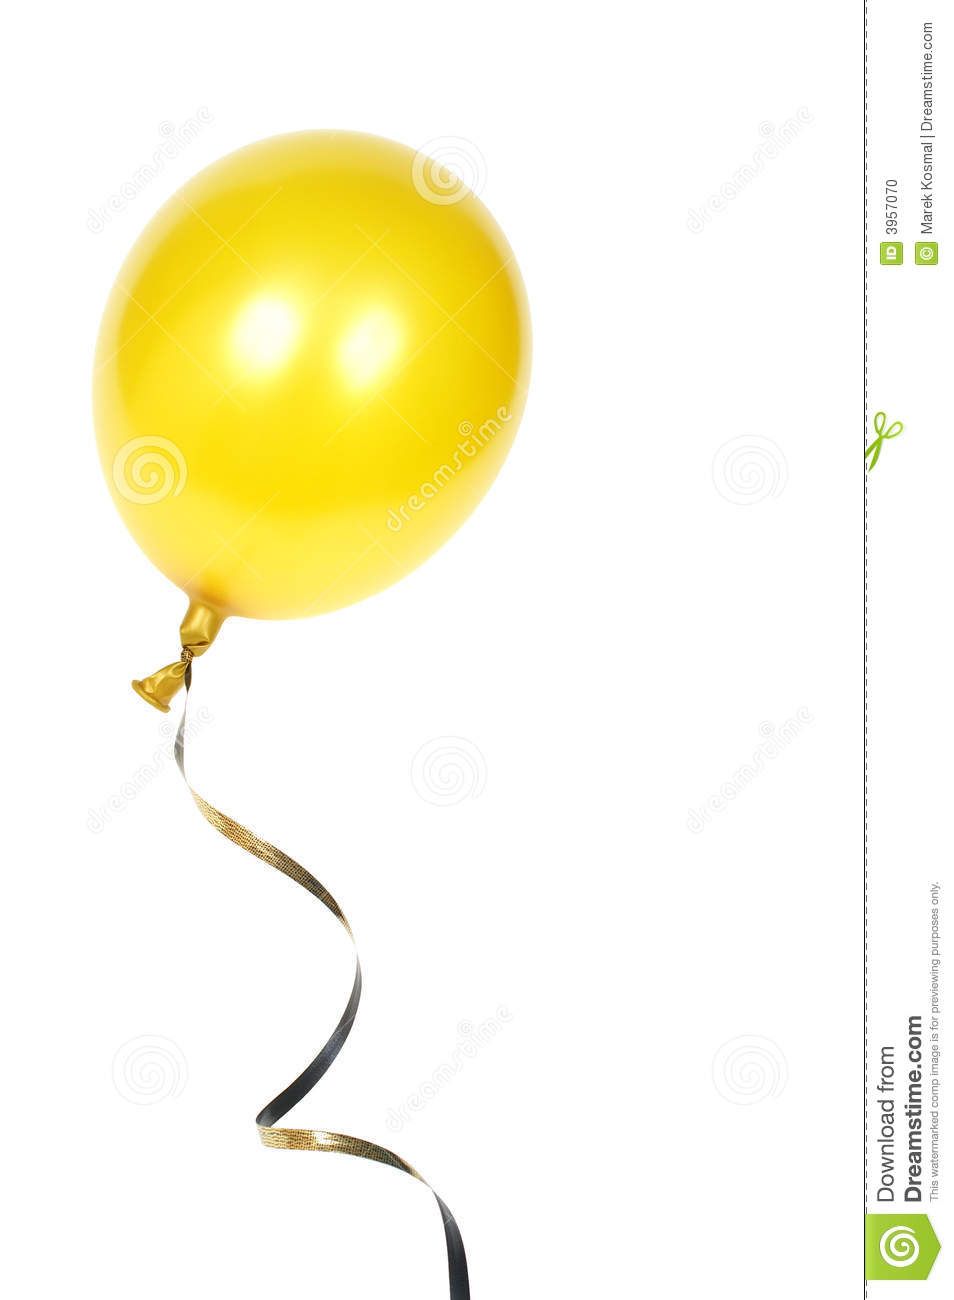 Yellow balloon with ribbon isolated on white background.